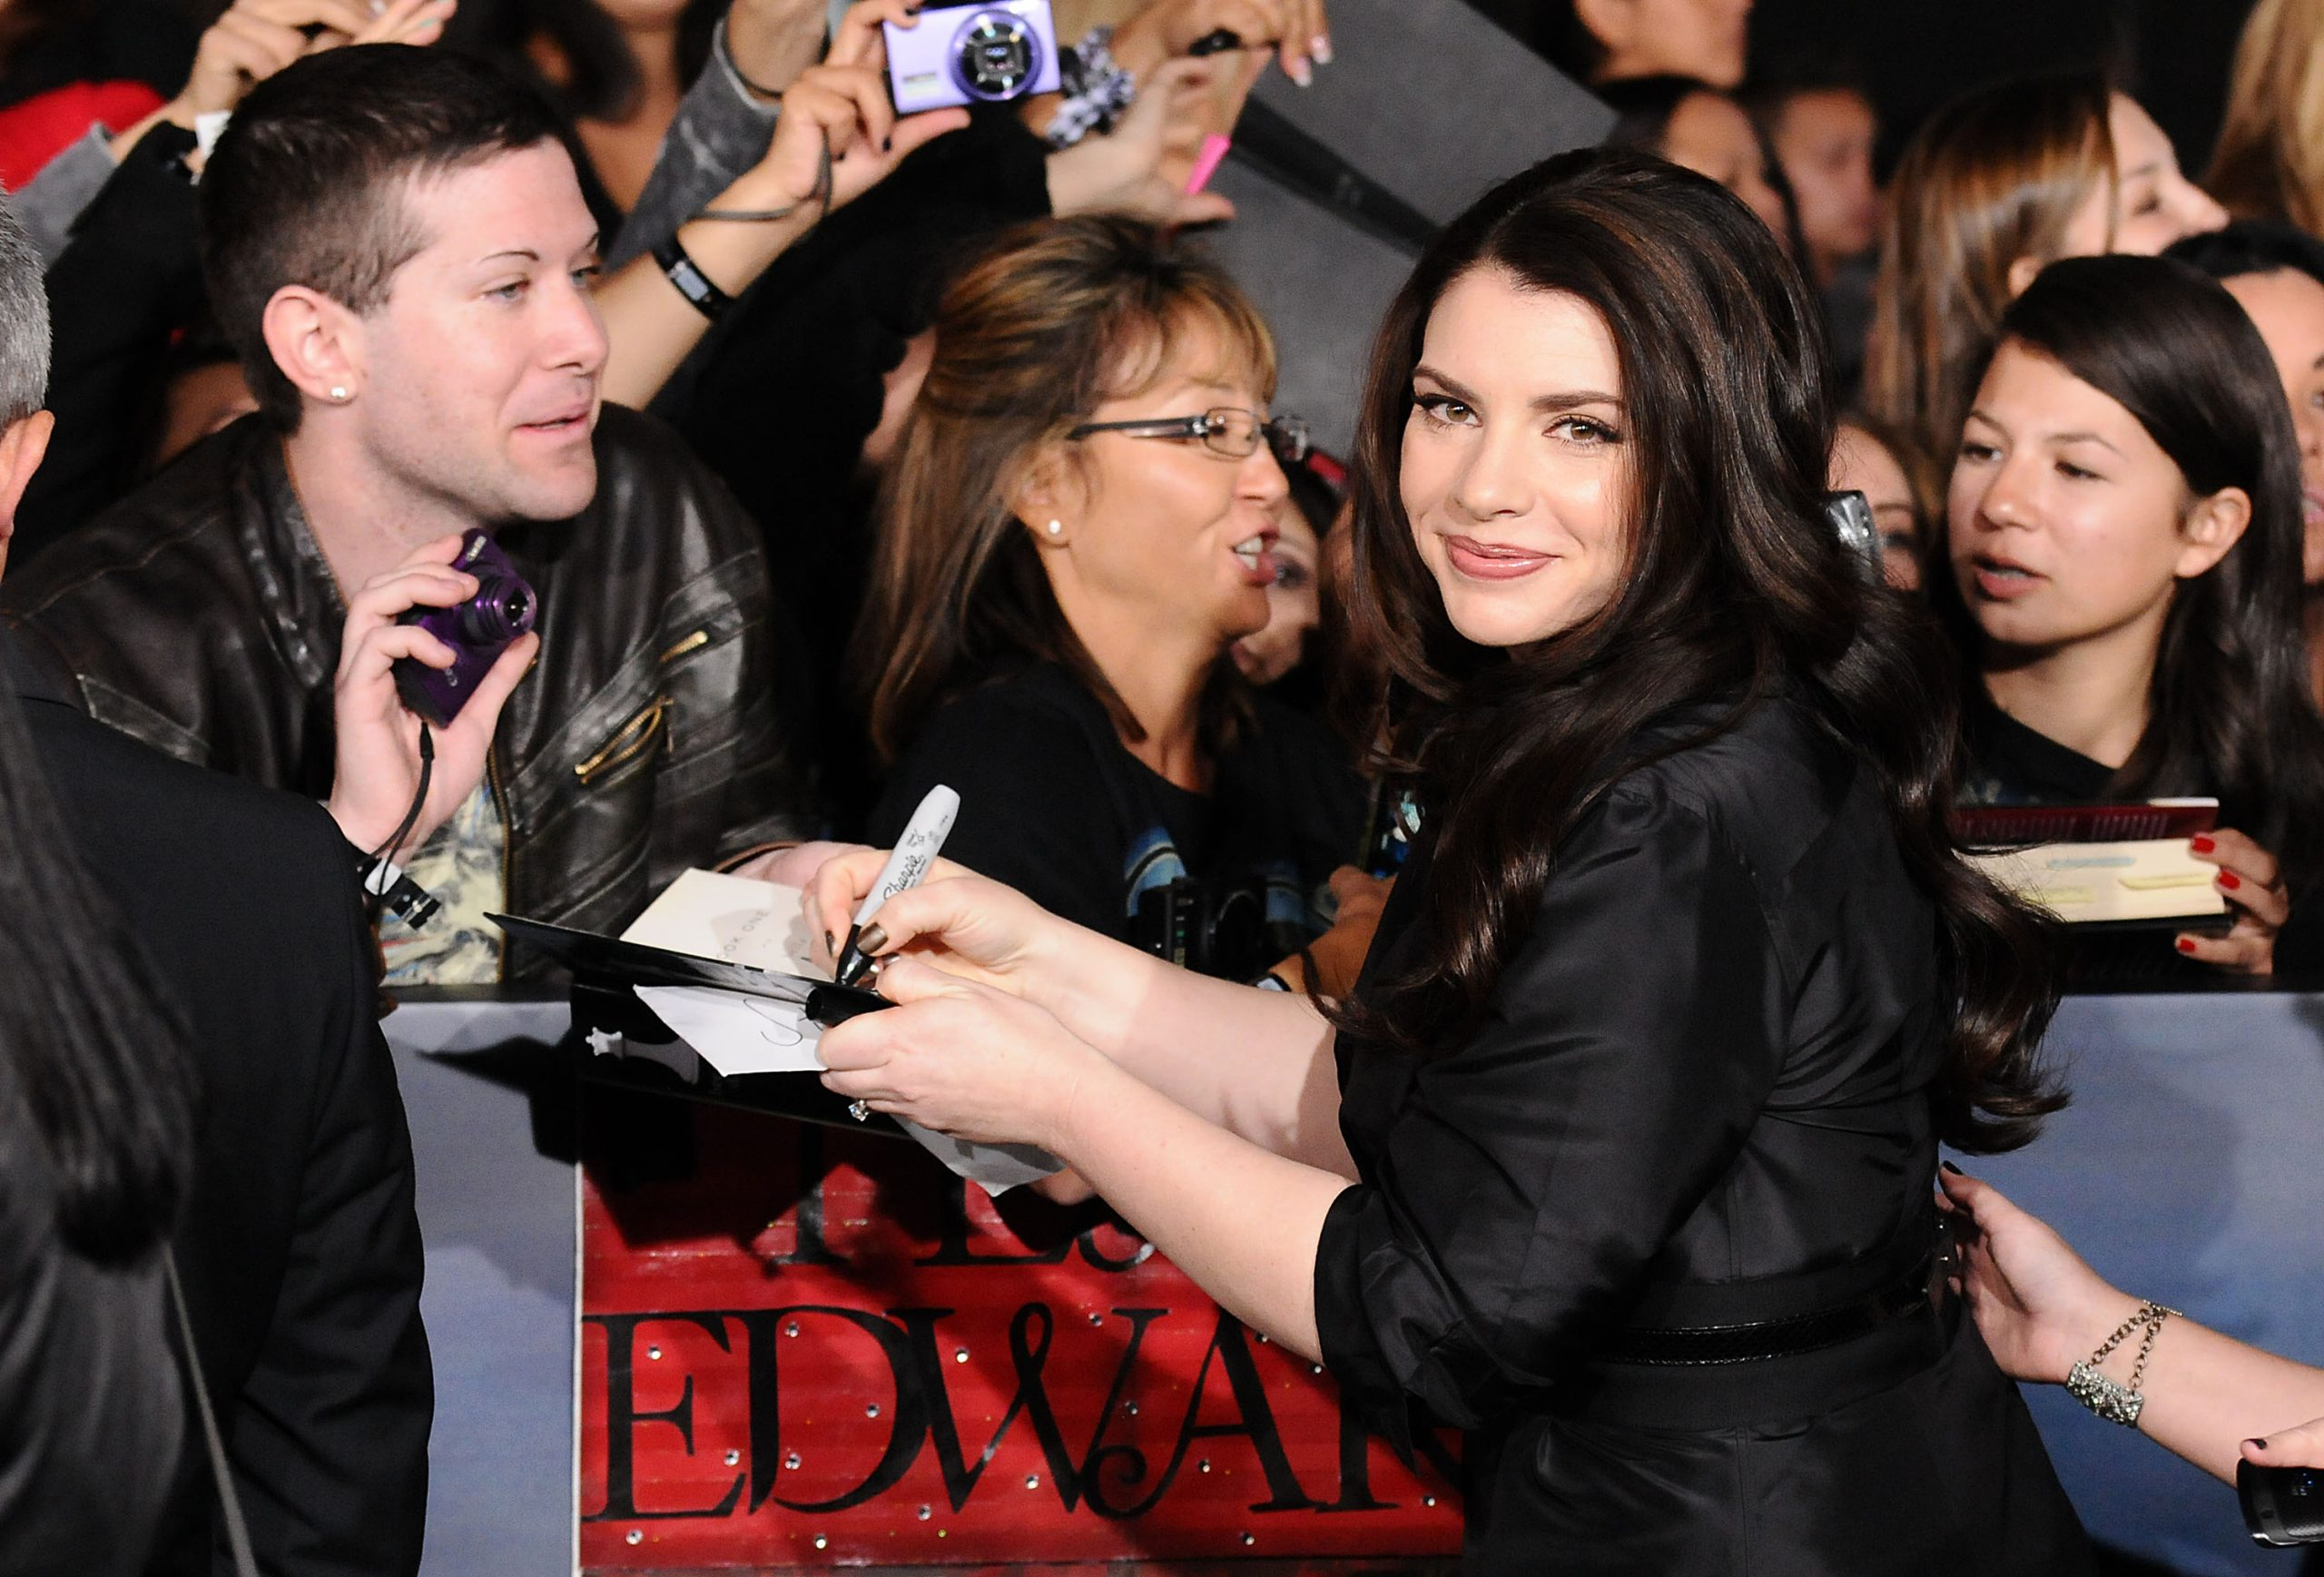 Stephenie Meyer signing autographs at the premiere of 'The Twilight Saga: Breaking Dawn - Part 2' on November 12, 2012